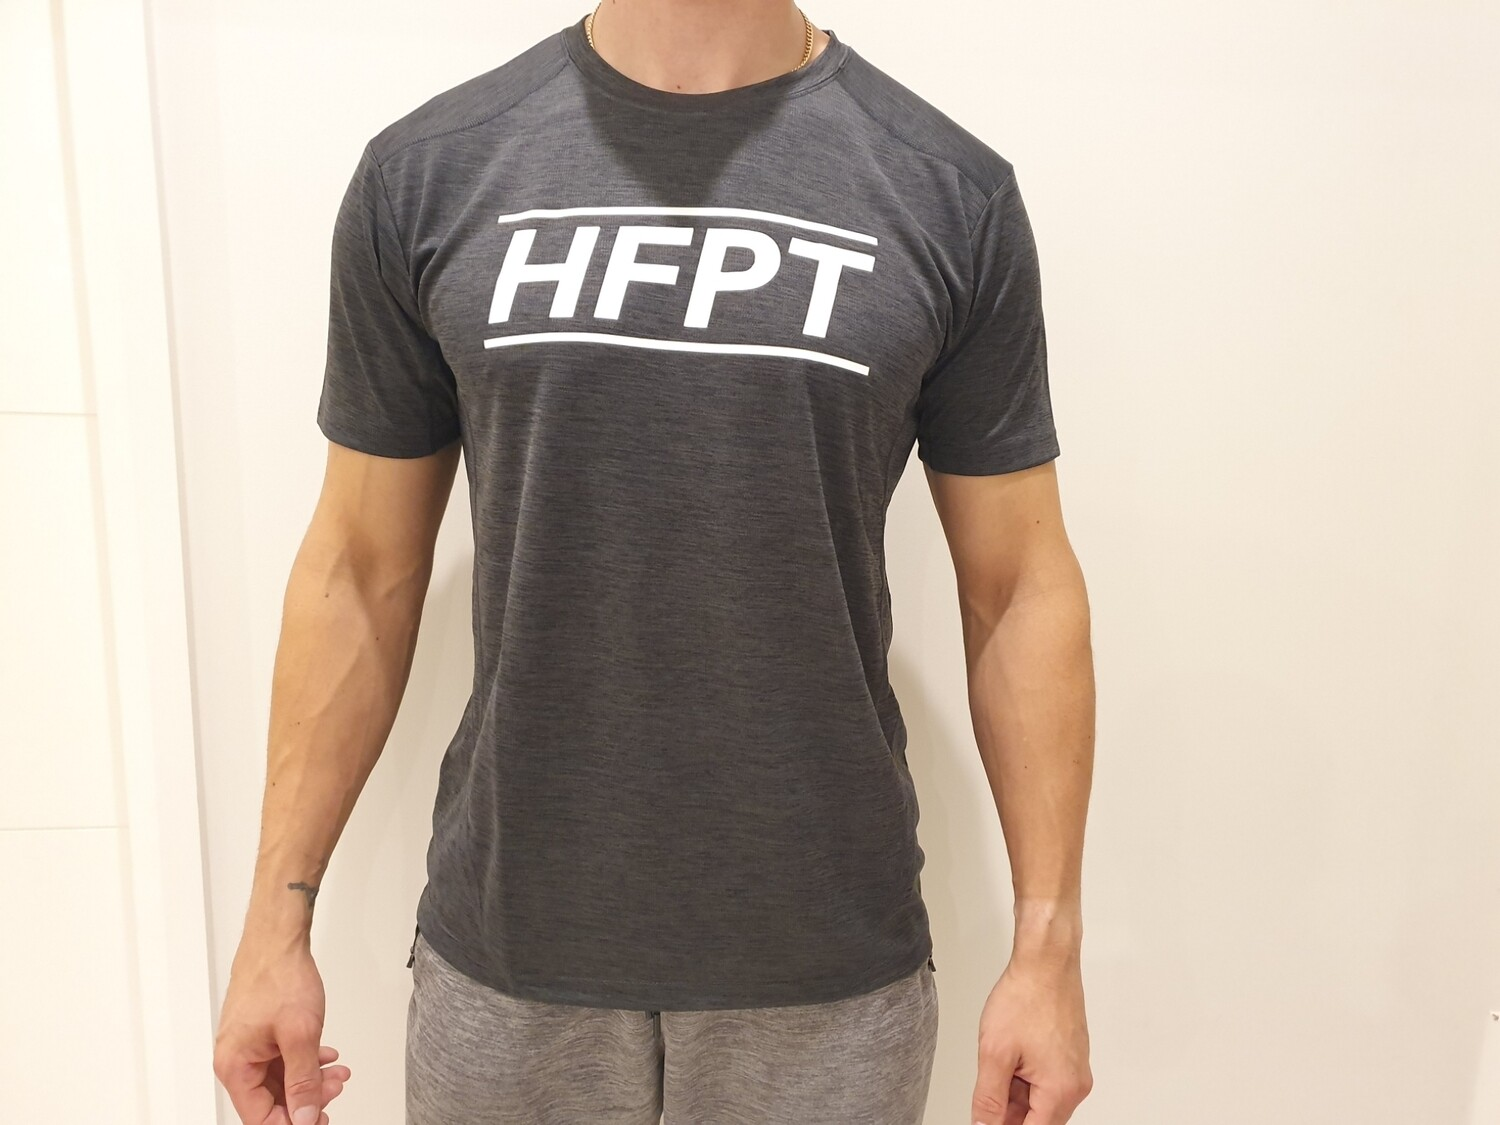 Men's 100% Polyester Dry Fit Tee